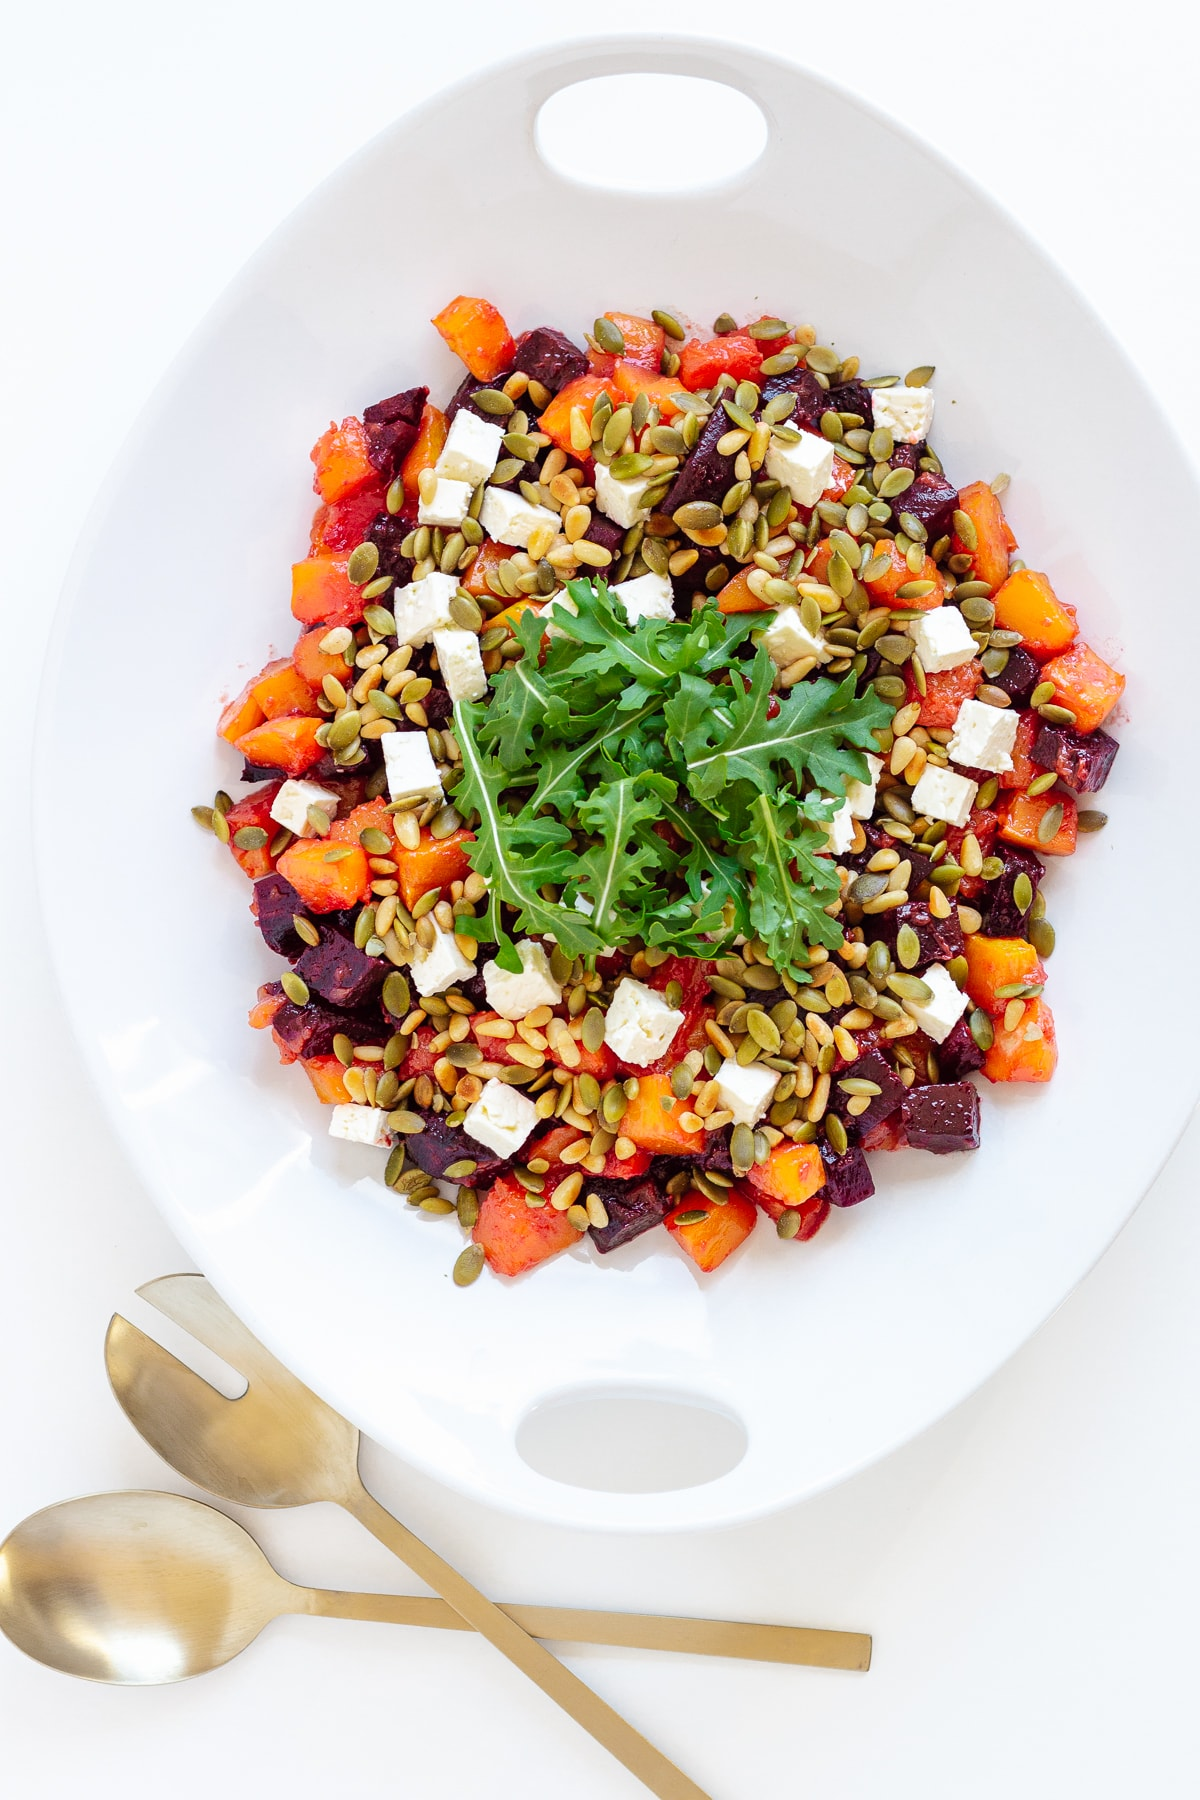 Pumpkin and beetroot salad in a white serving dish with matte gold coloured salad servers.